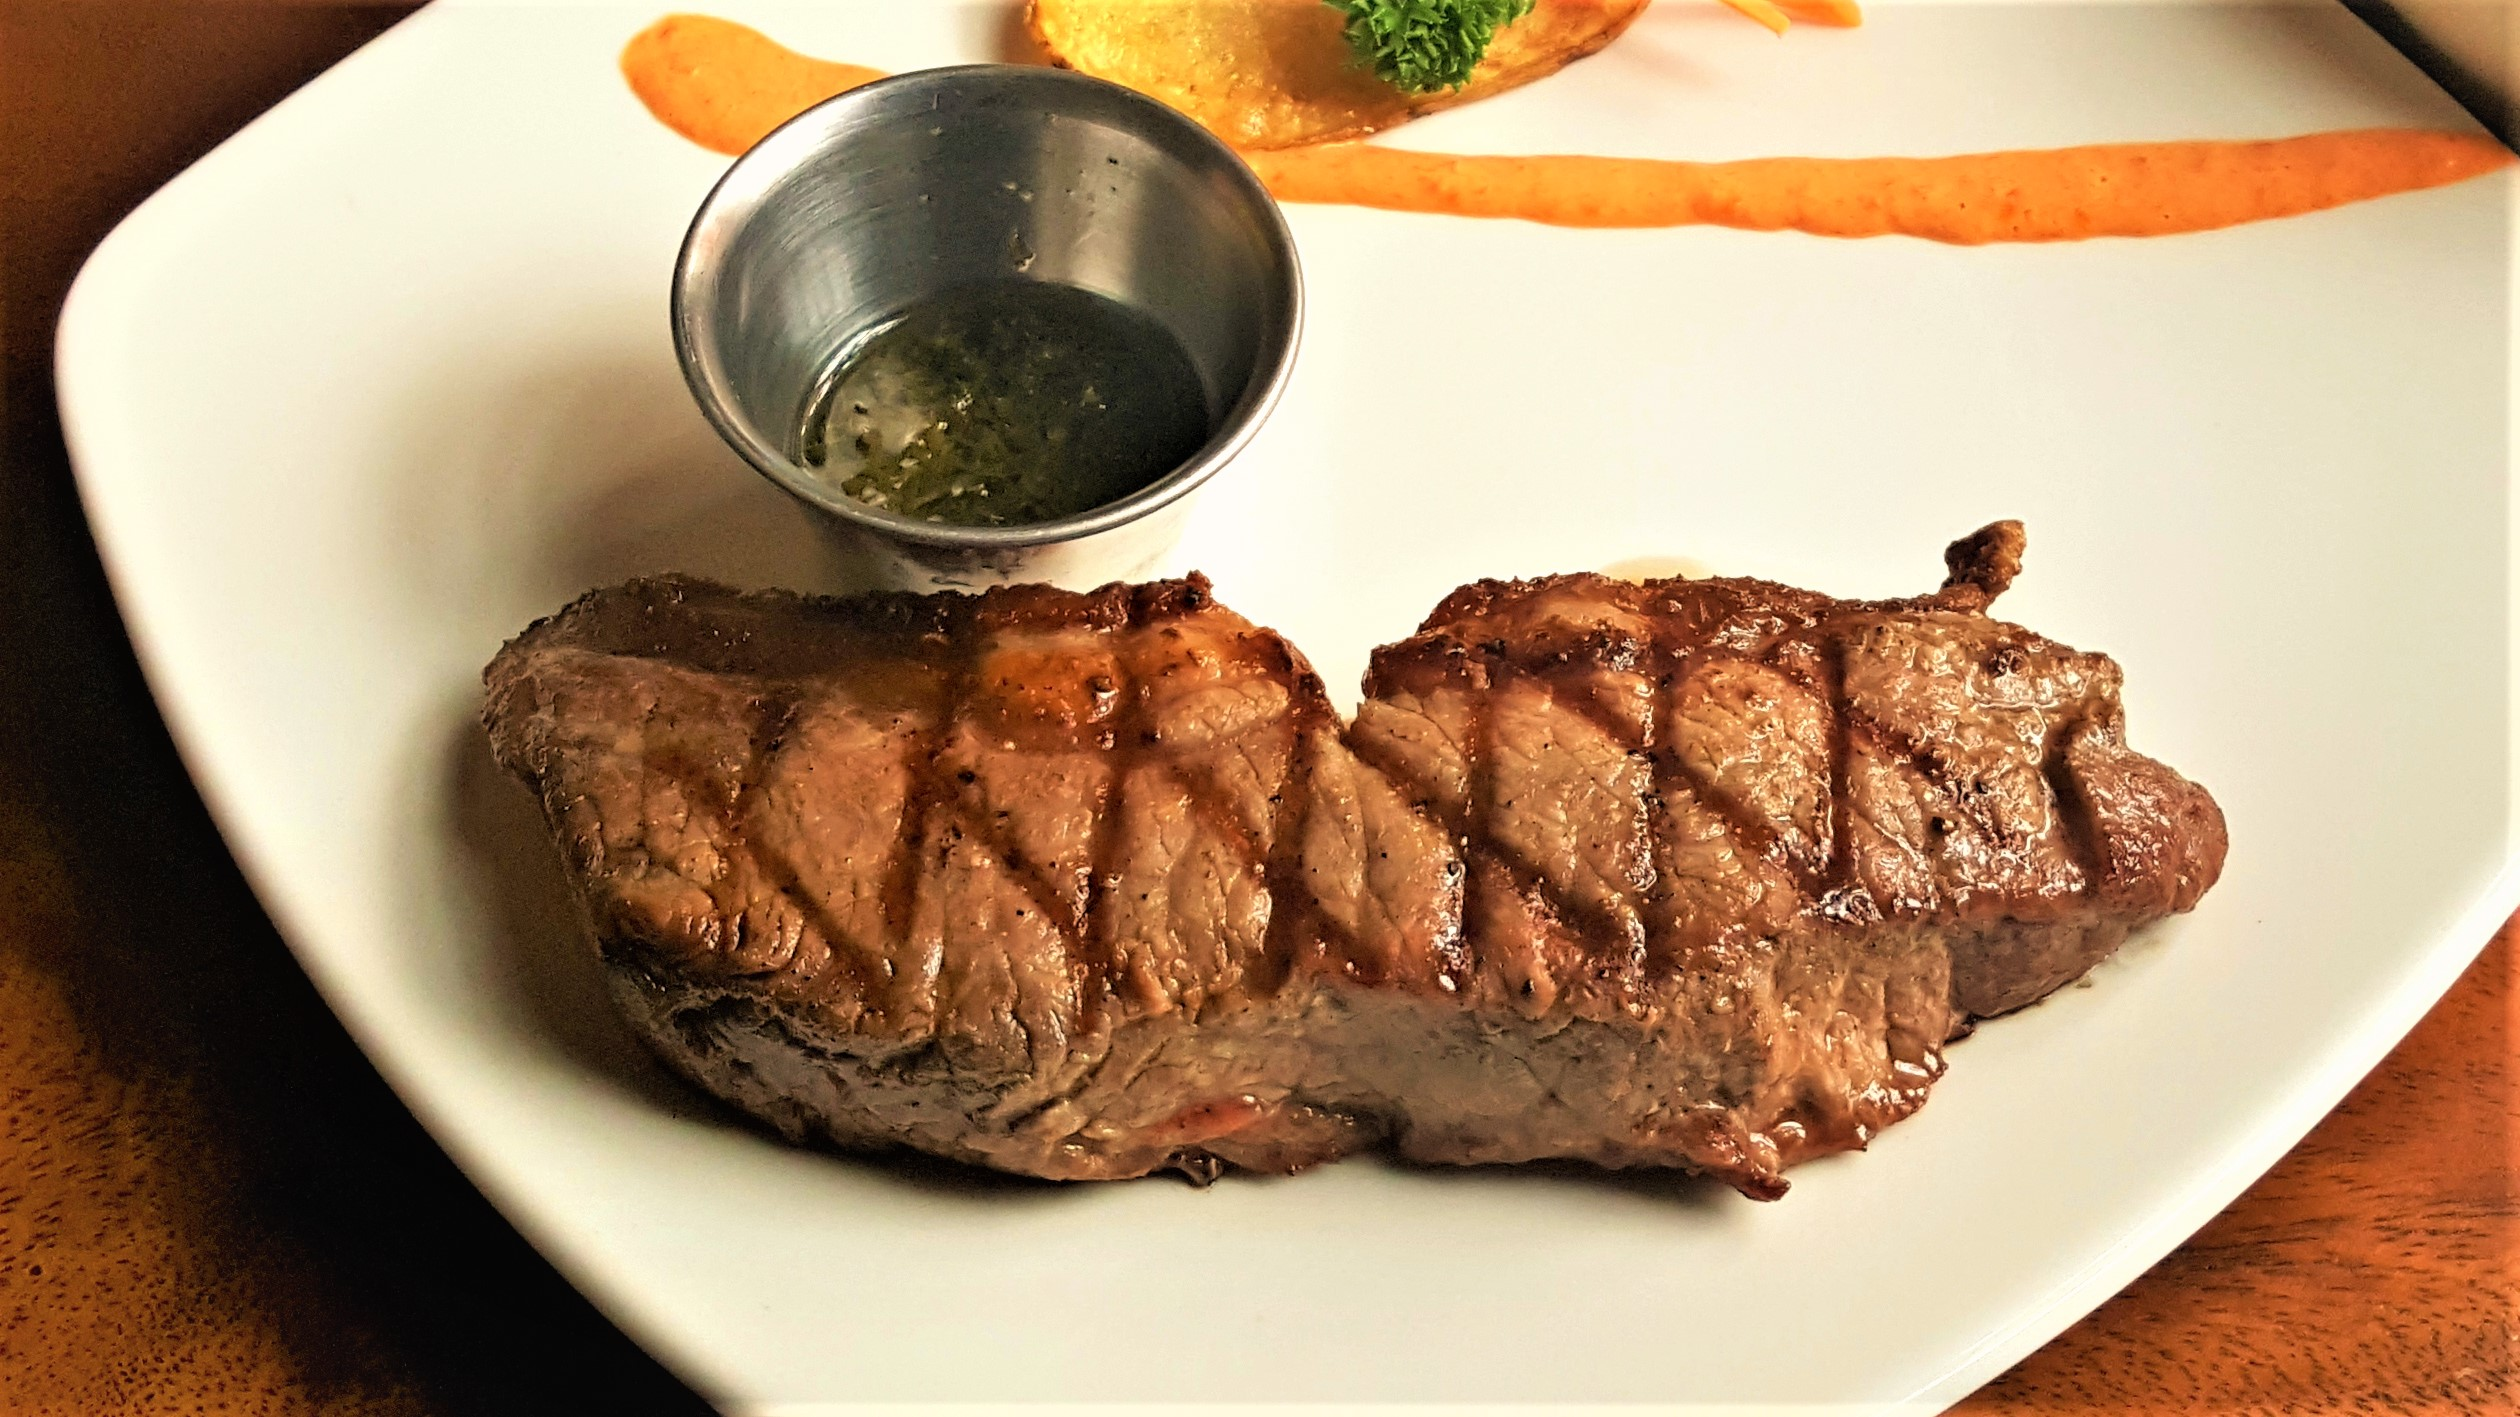 New York steak (Bife de Chorizo)